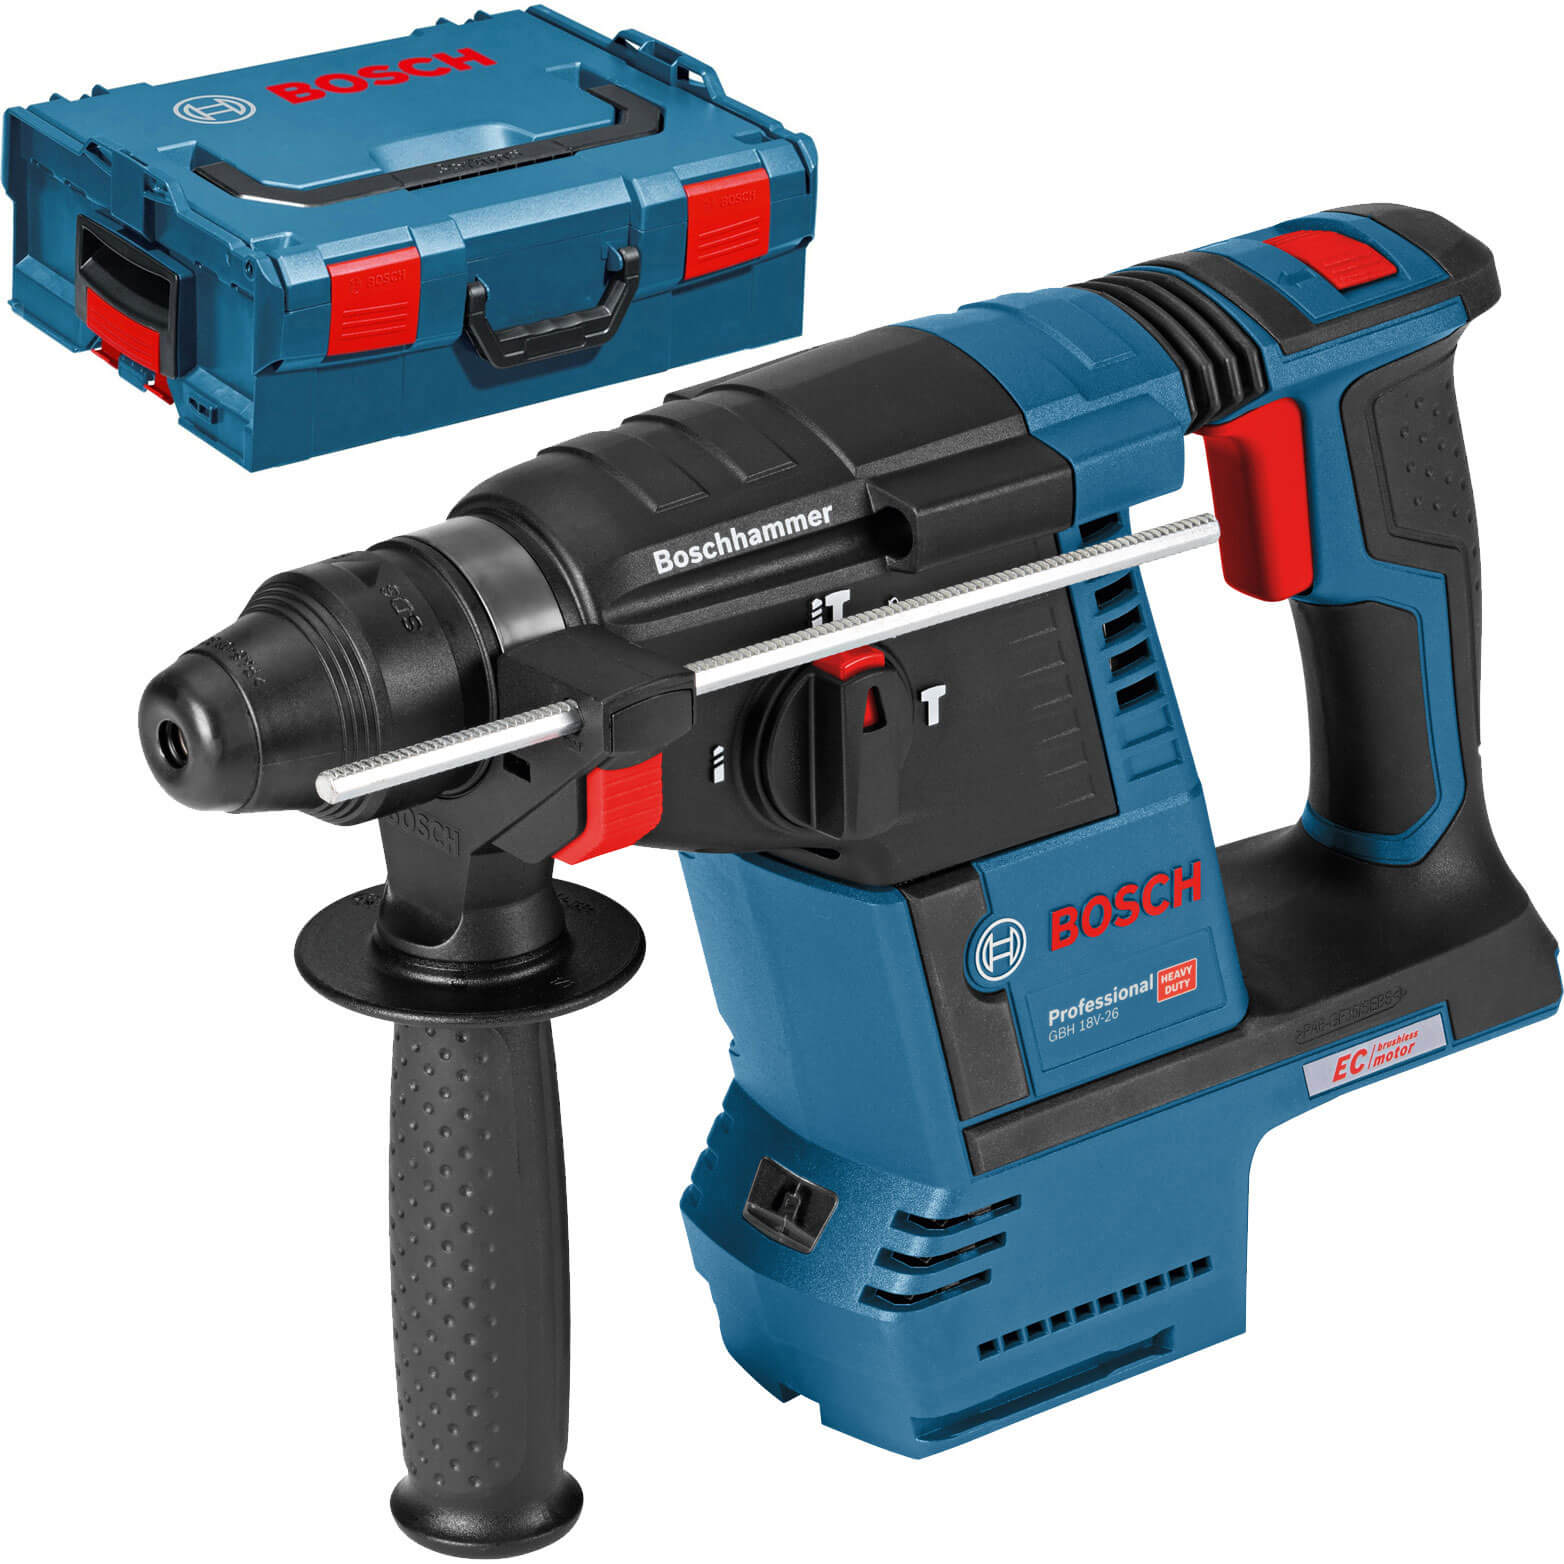 Image of Bosch GBH 18 V-26 18v Cordless SDS Drill No Batteries No Charger Case